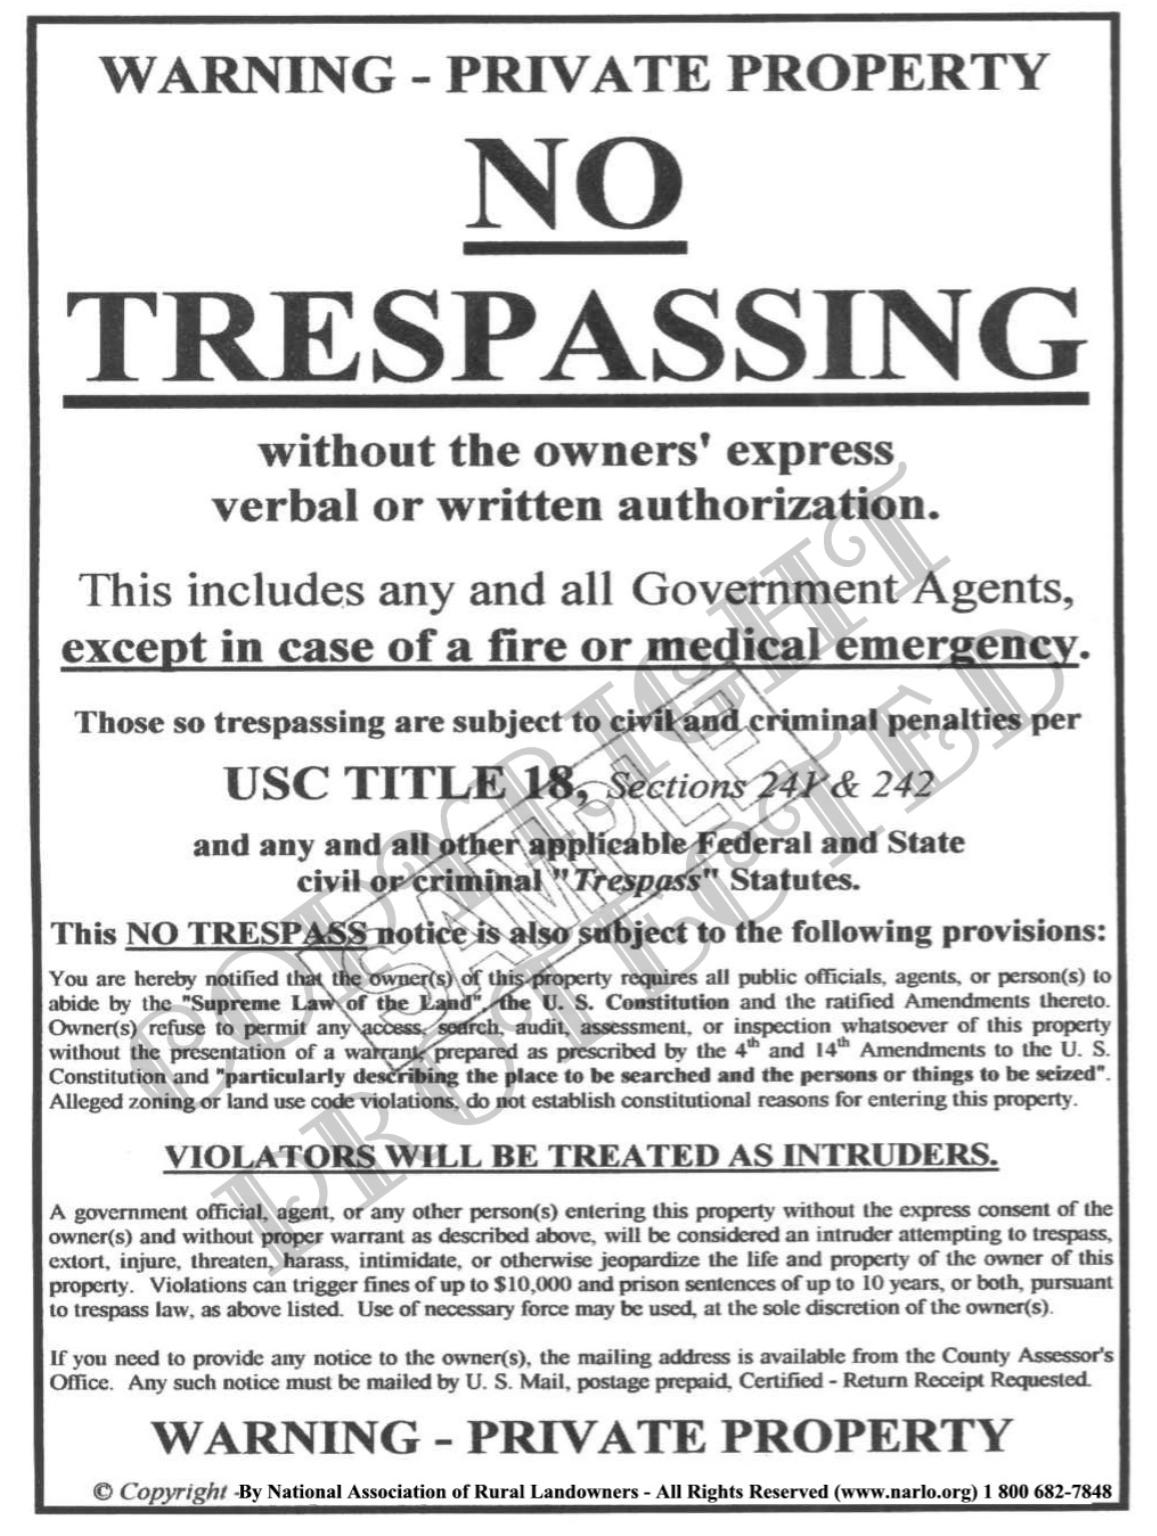 NARLO No Trespassing Sign